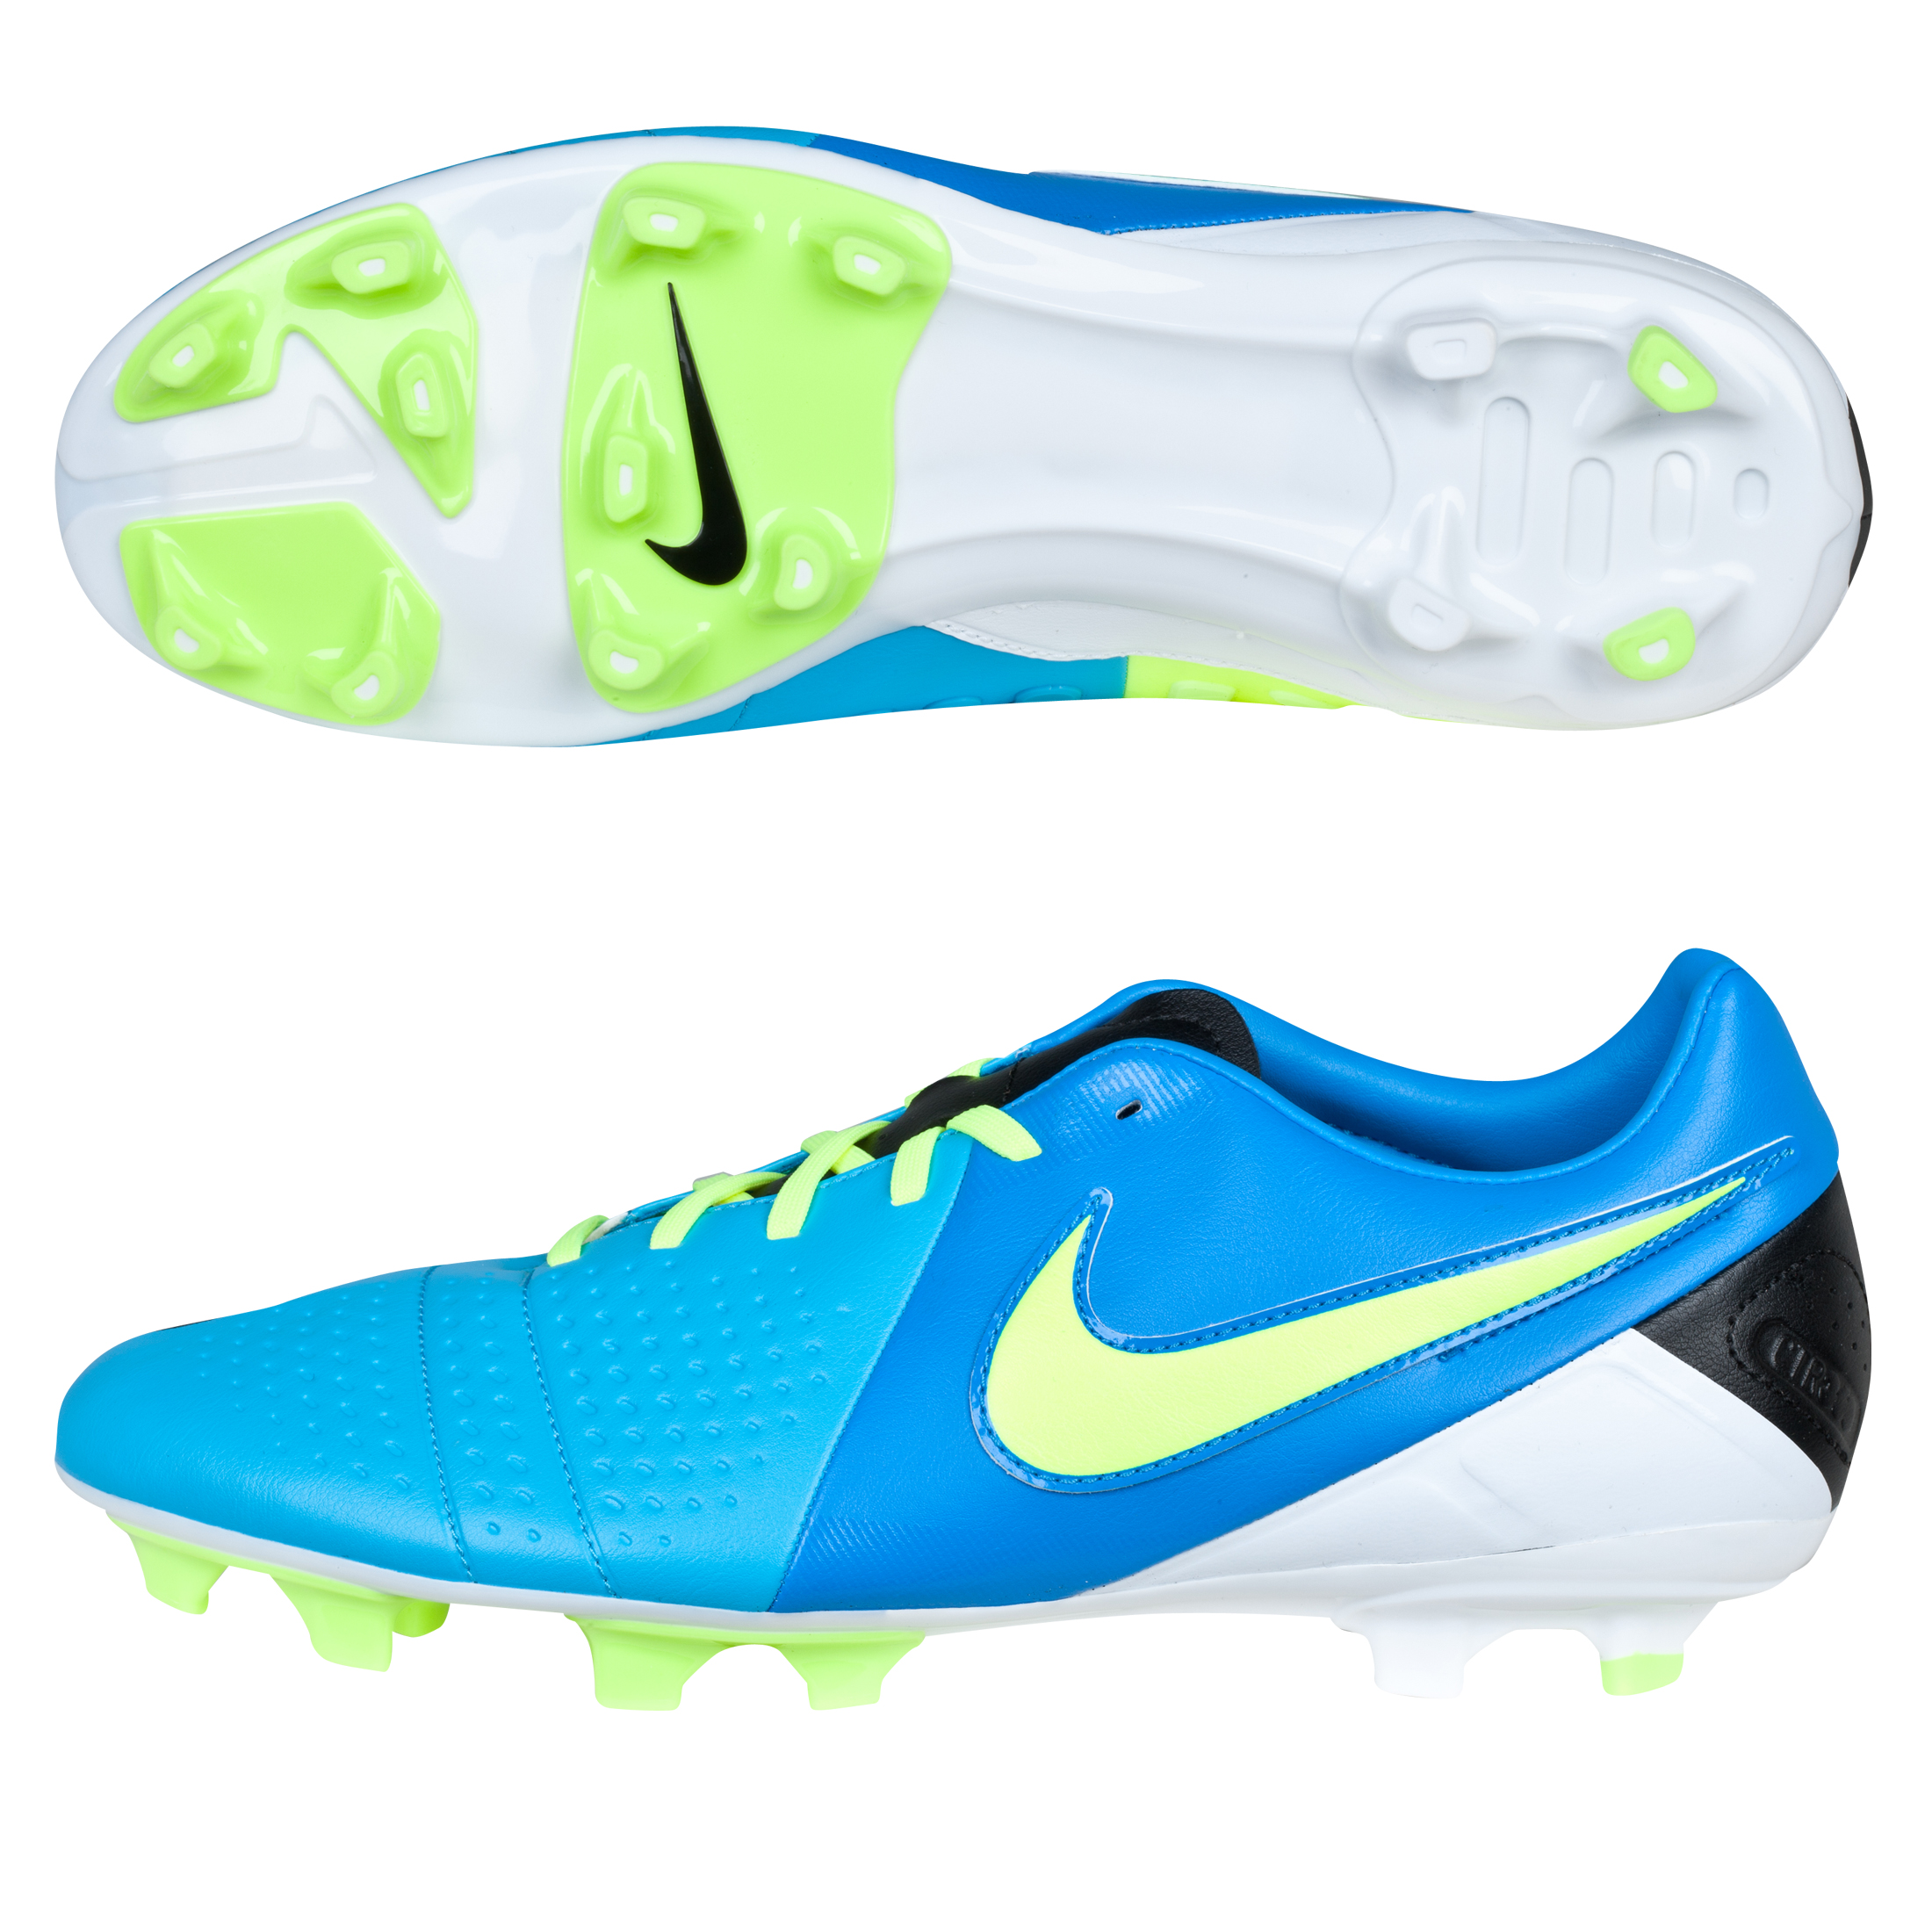 Nike CTR360 Libretto III Firm Ground Football Boots Blue